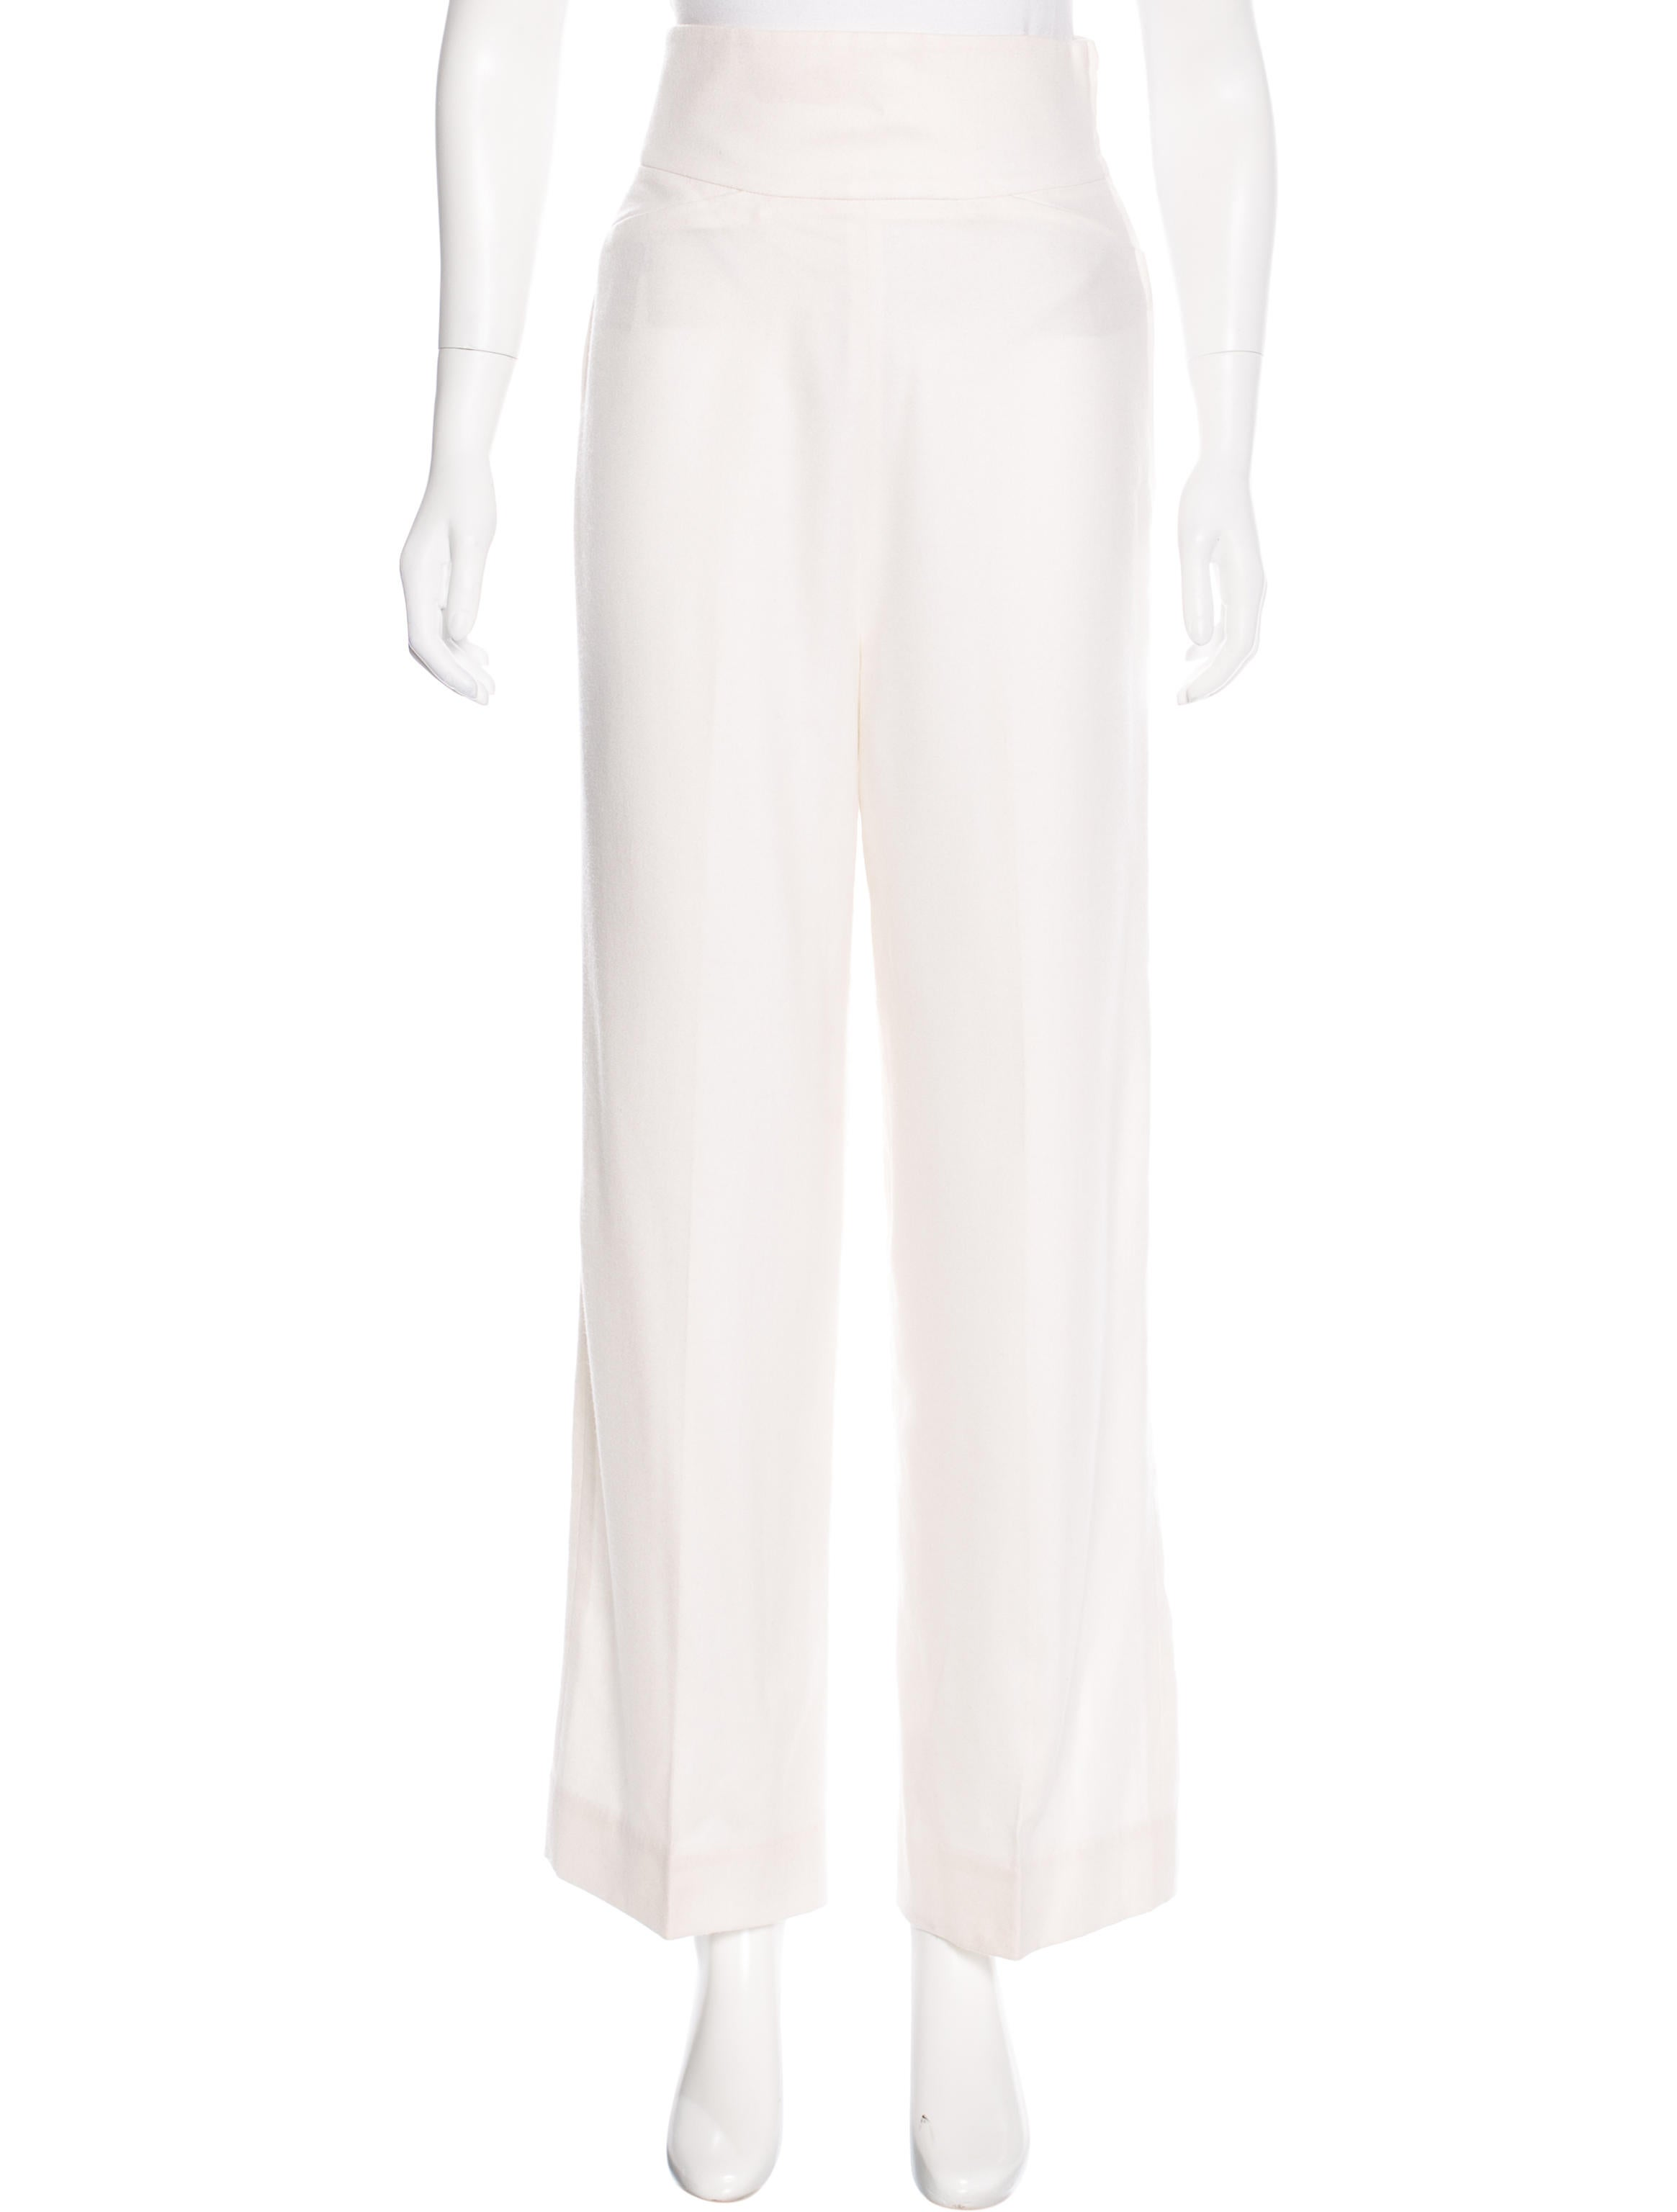 Side zipper, high frilled waist, wide leg palazzo pants with belted. CROSS Women's Layered Wide Leg Flowy Cropped Palazzo Flare Pants High Waist Trousers Long Skirt Loose Fit. by CROSS $ - $ $ 9 $ 16 99 Prime. FREE Shipping on eligible orders. Some sizes/colors are Prime eligible.